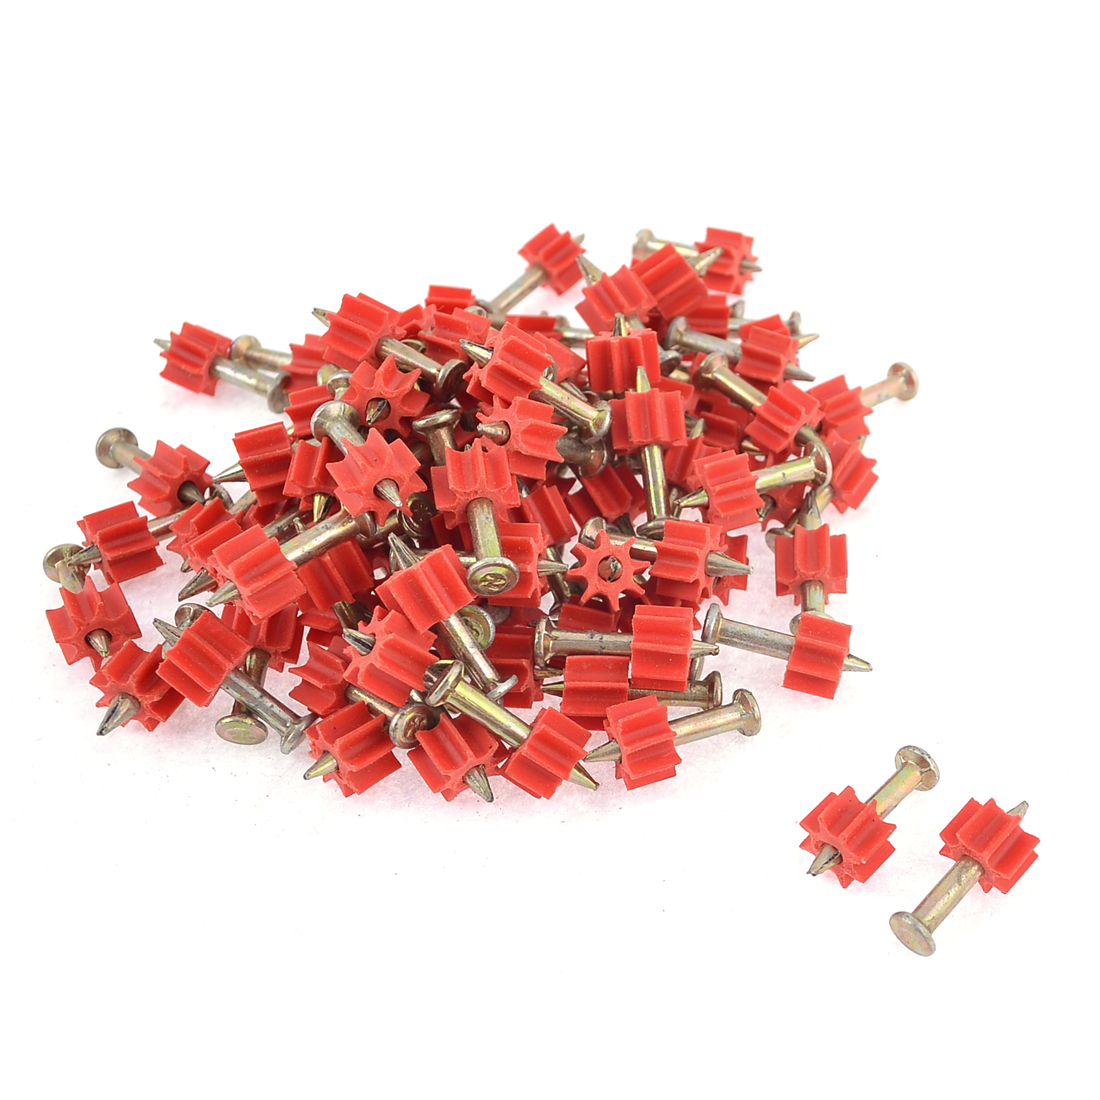 100 Pcs 2.8mm Dia Shank 22mm Long Power Hammer Drive Pins Fasteners